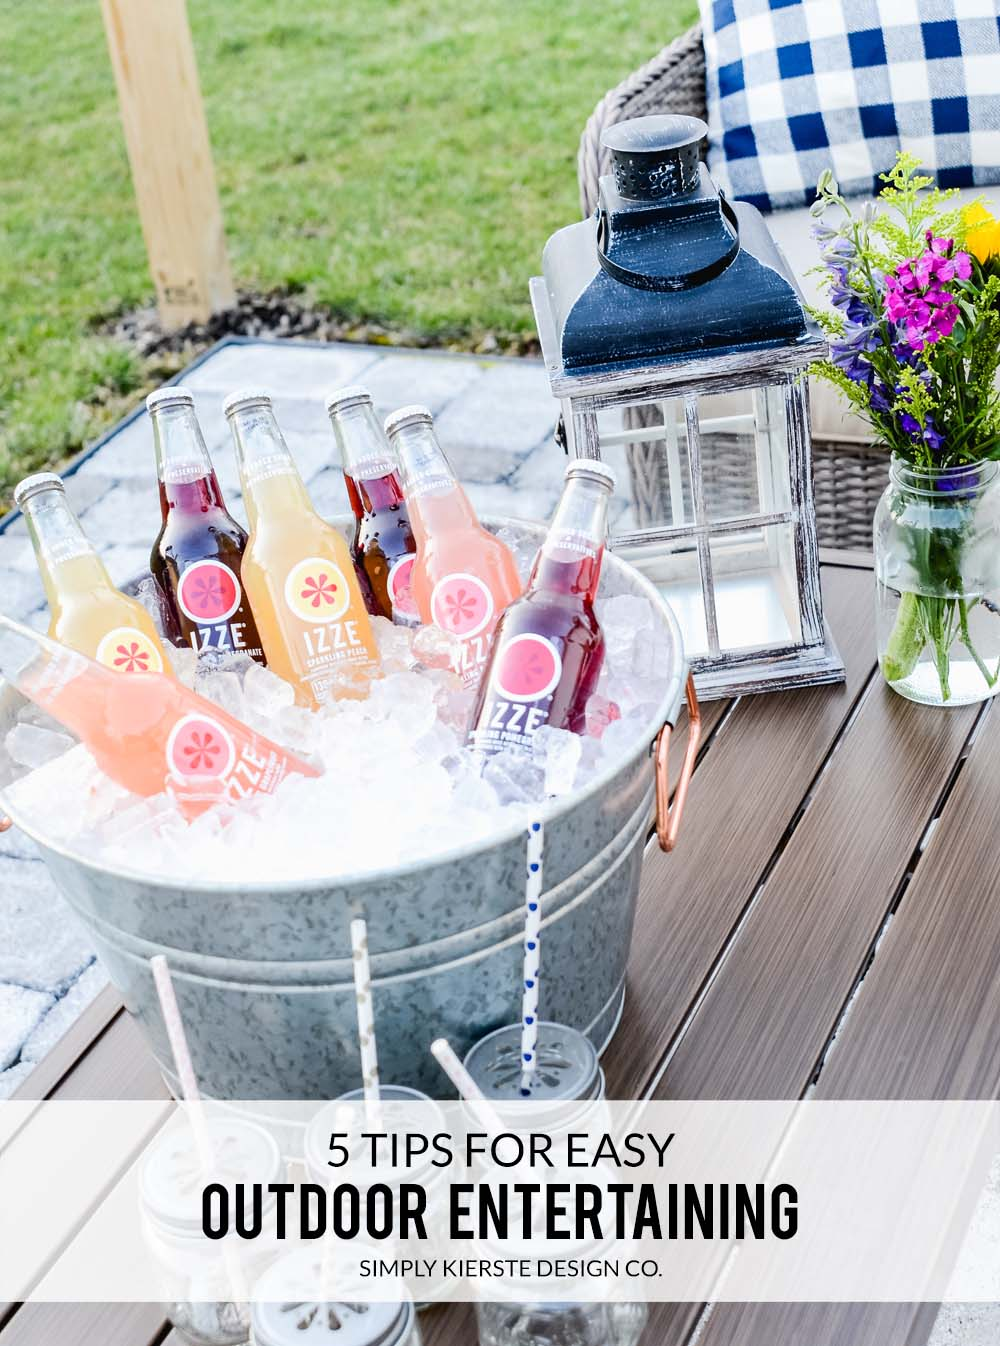 Tips for Easy Outdoor Entertaining | Setting an Outdoor Table #summerentertaining #entertaining tips #outdoorentertaining #galvanizedservingpieces #outdoorlantern #beveragetub #summerstyle #patio #backyardideas #settingasummertable